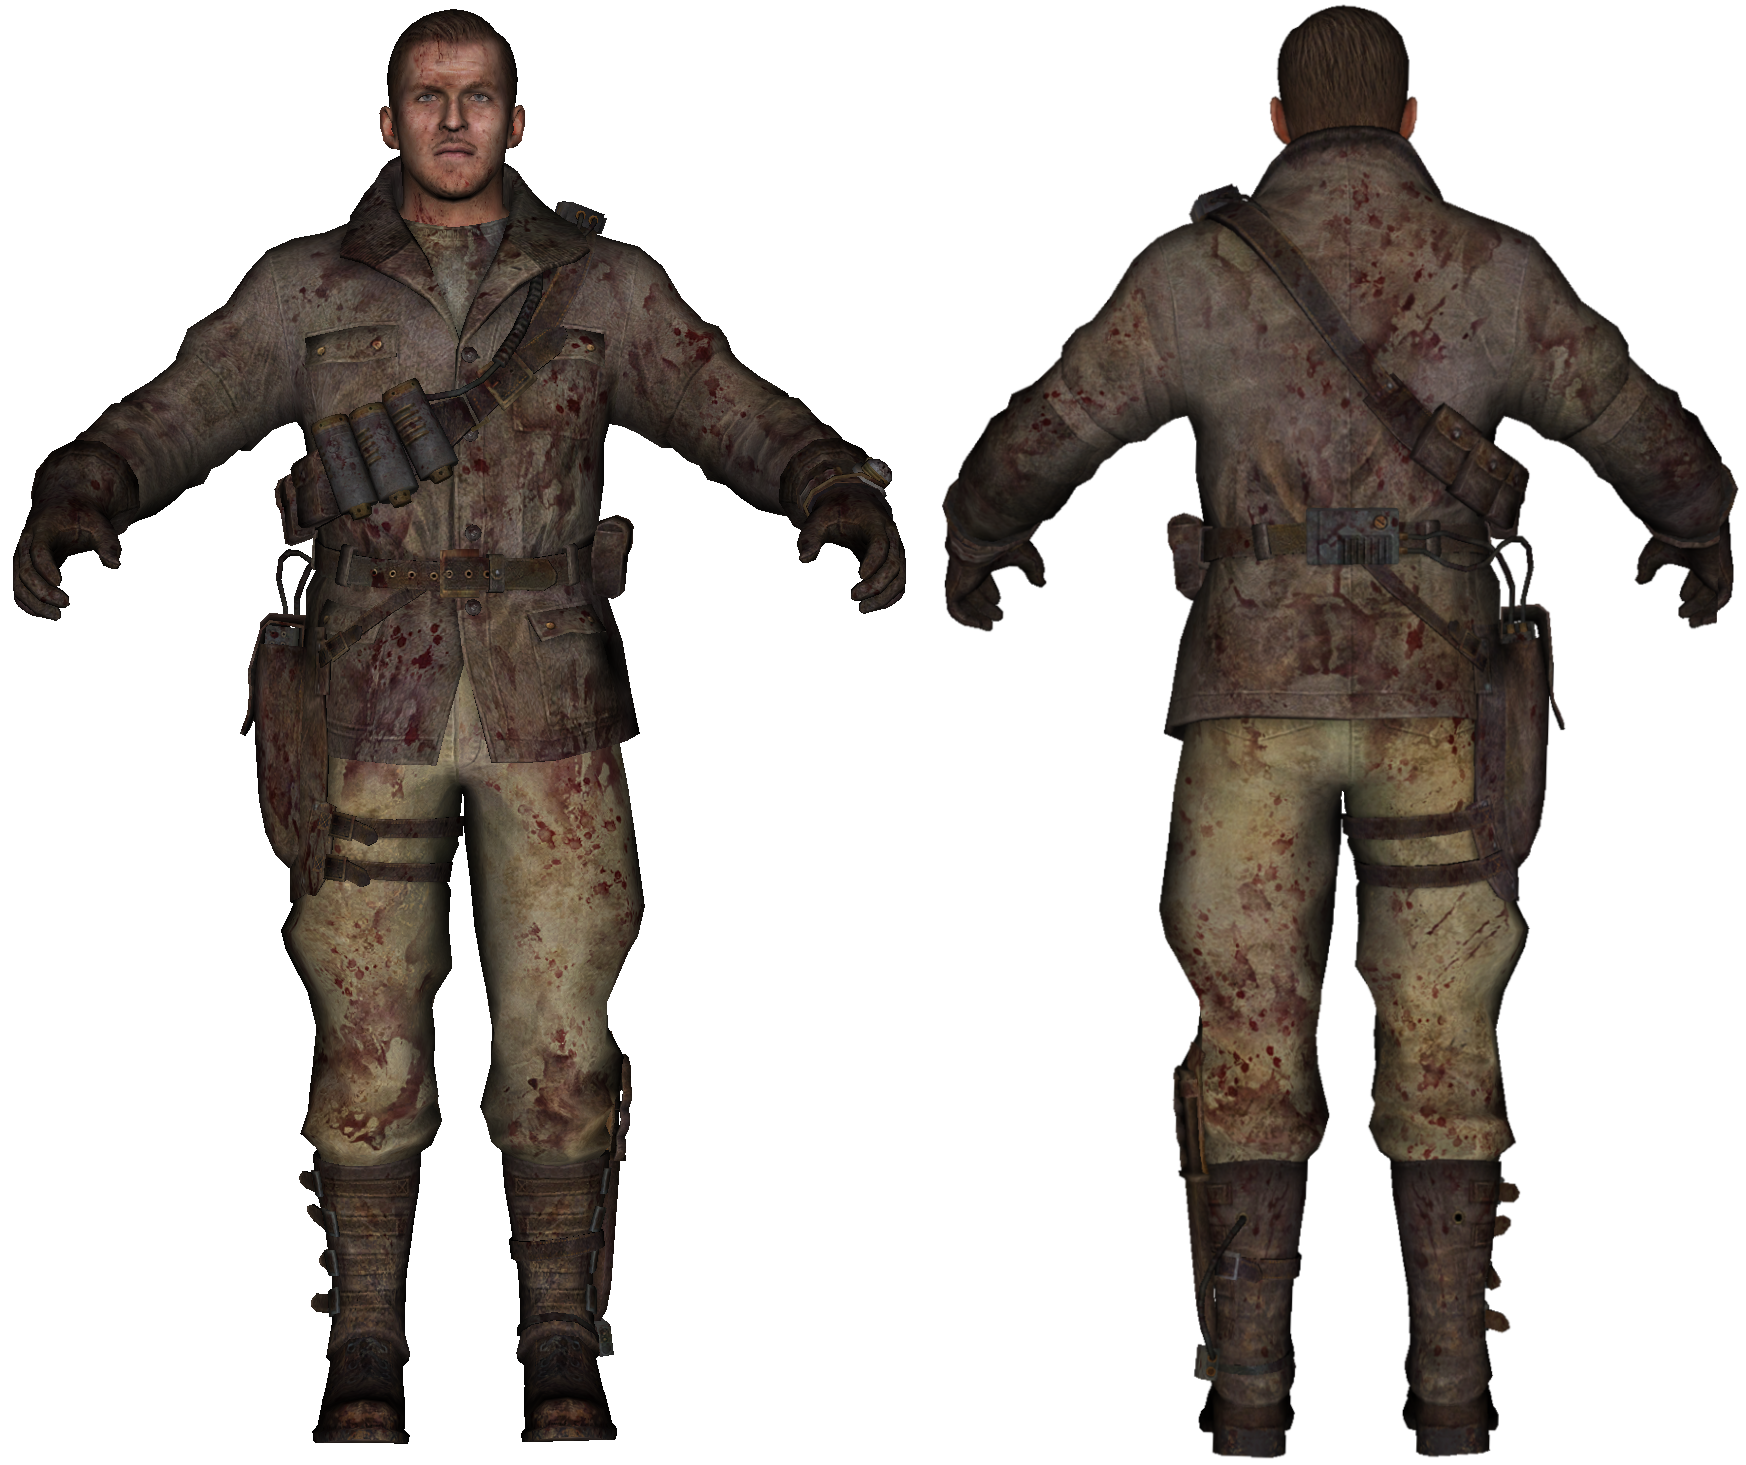 Tank Dempsey Call Of Duty Wiki Fandom Powered By Wikia. Nikolai Belinski ??????? ?????????  sc 1 st  Hallowen Costum Udaf & nikolai belinski halloween costume - Hallowen Costum Udaf